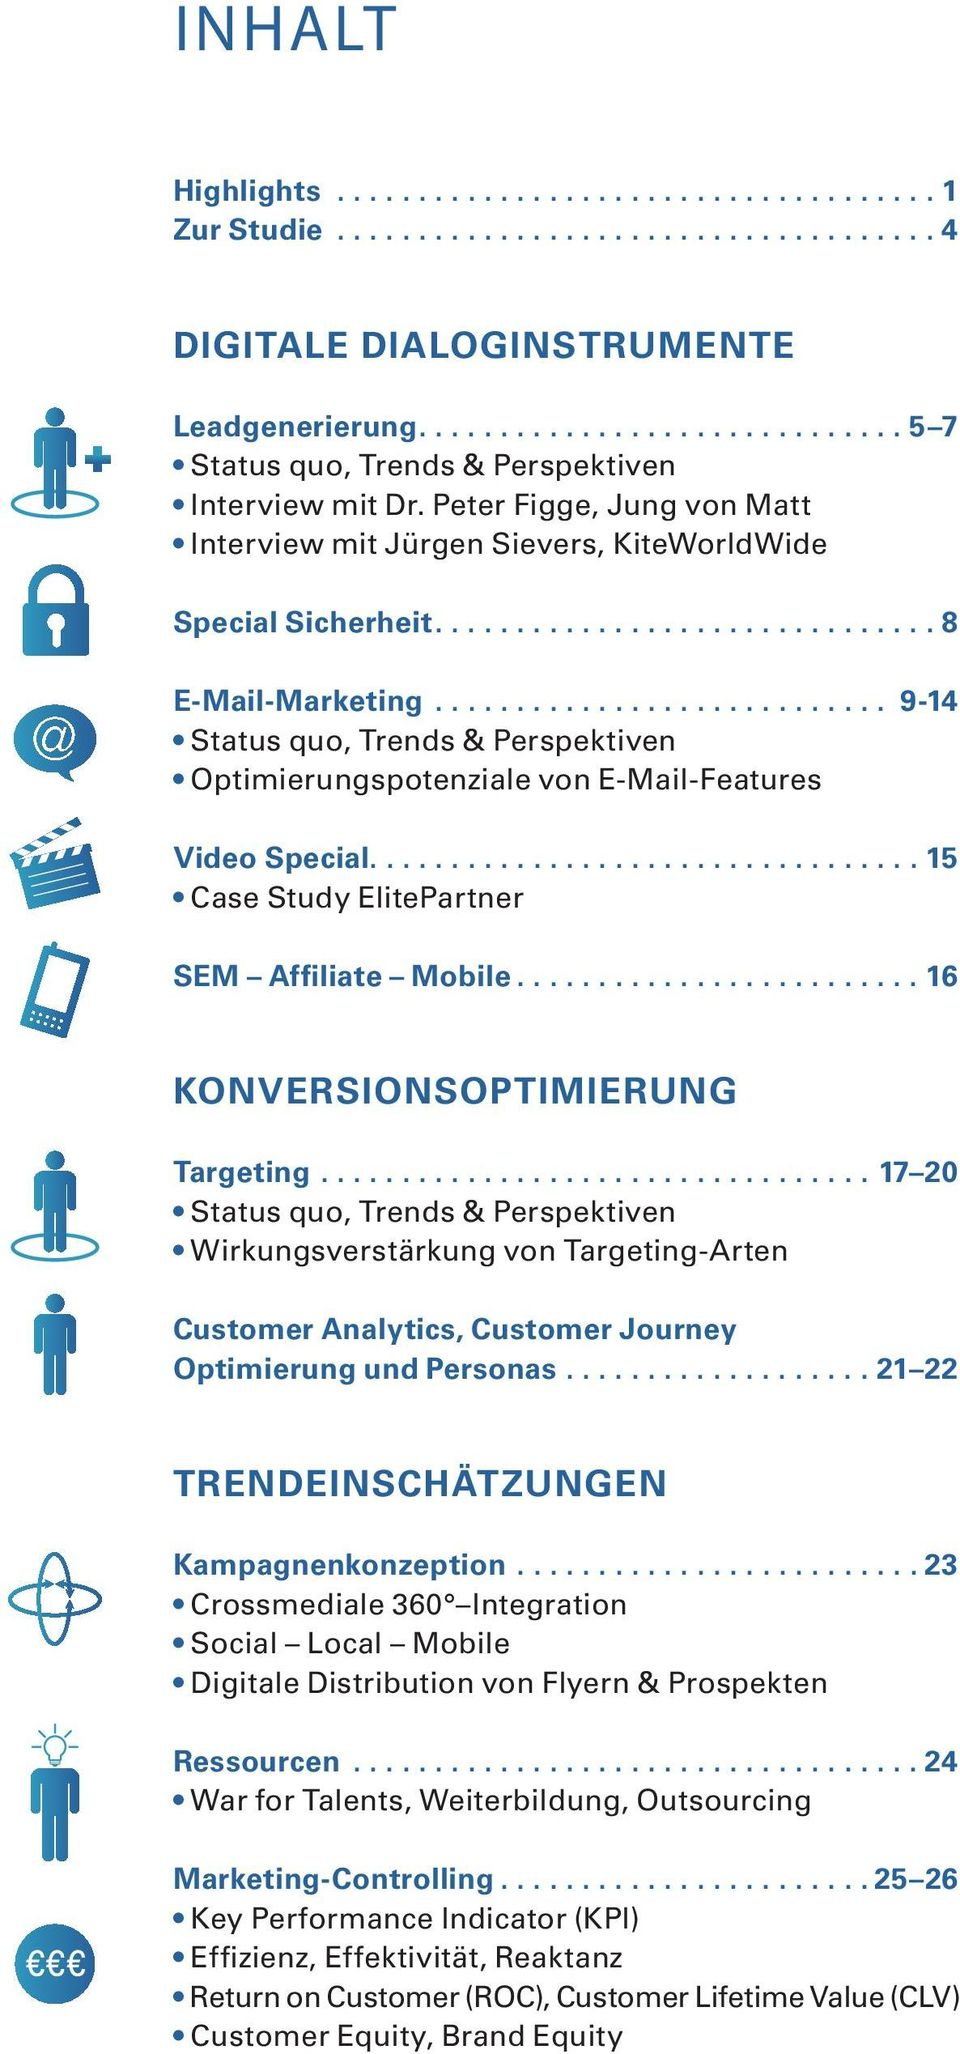 .. 9-14 Status quo, Trends & Perspektiven Optimierungspotenziale von E-Mail-Features Video Special.................................. 15 Case Study ElitePartner SEM Affiliate Mobile.